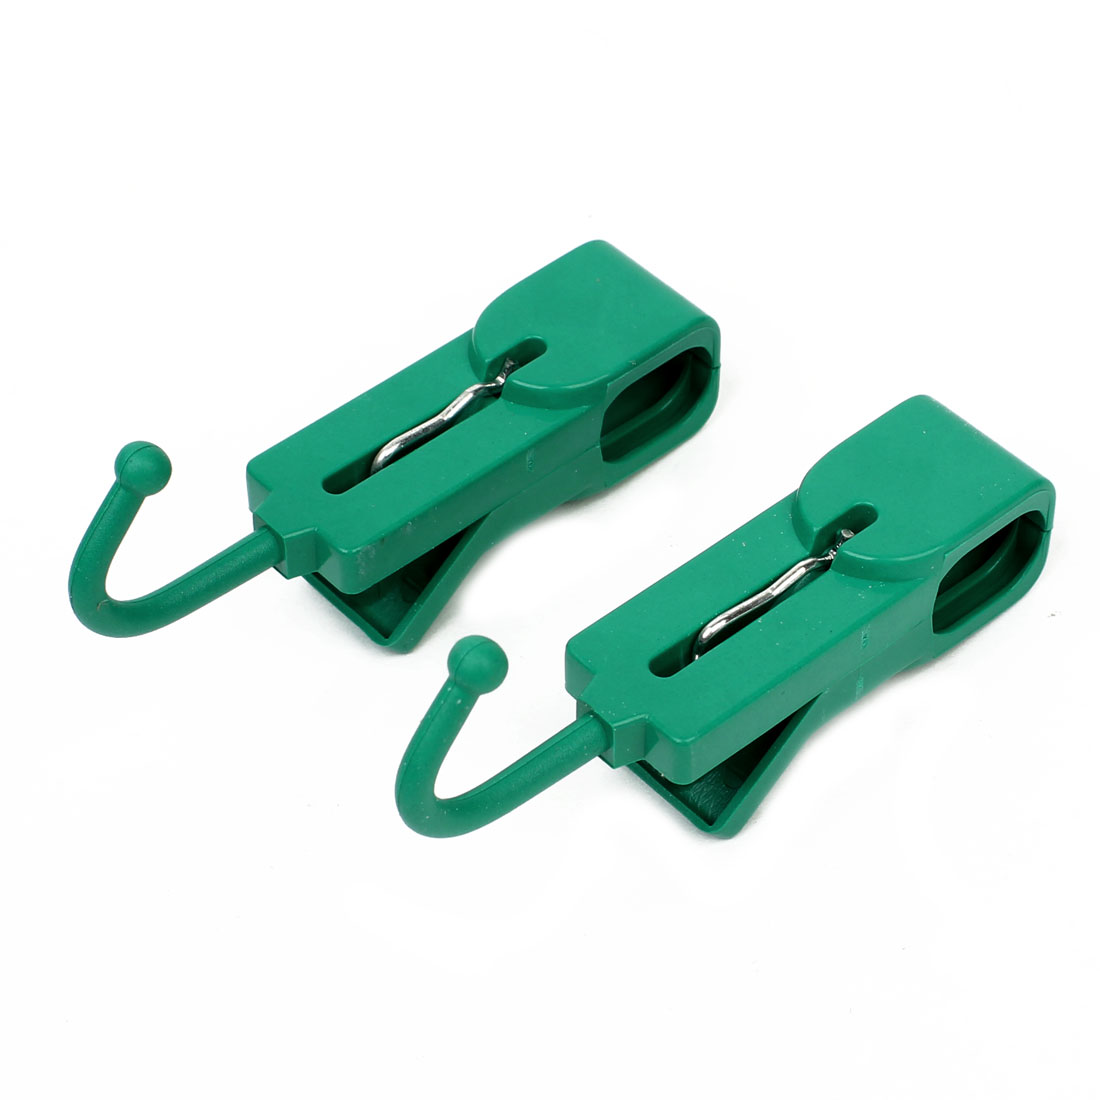 Home Spring Loaded Plastic Green Clothes Cup Clips Clamps 2 Pcs